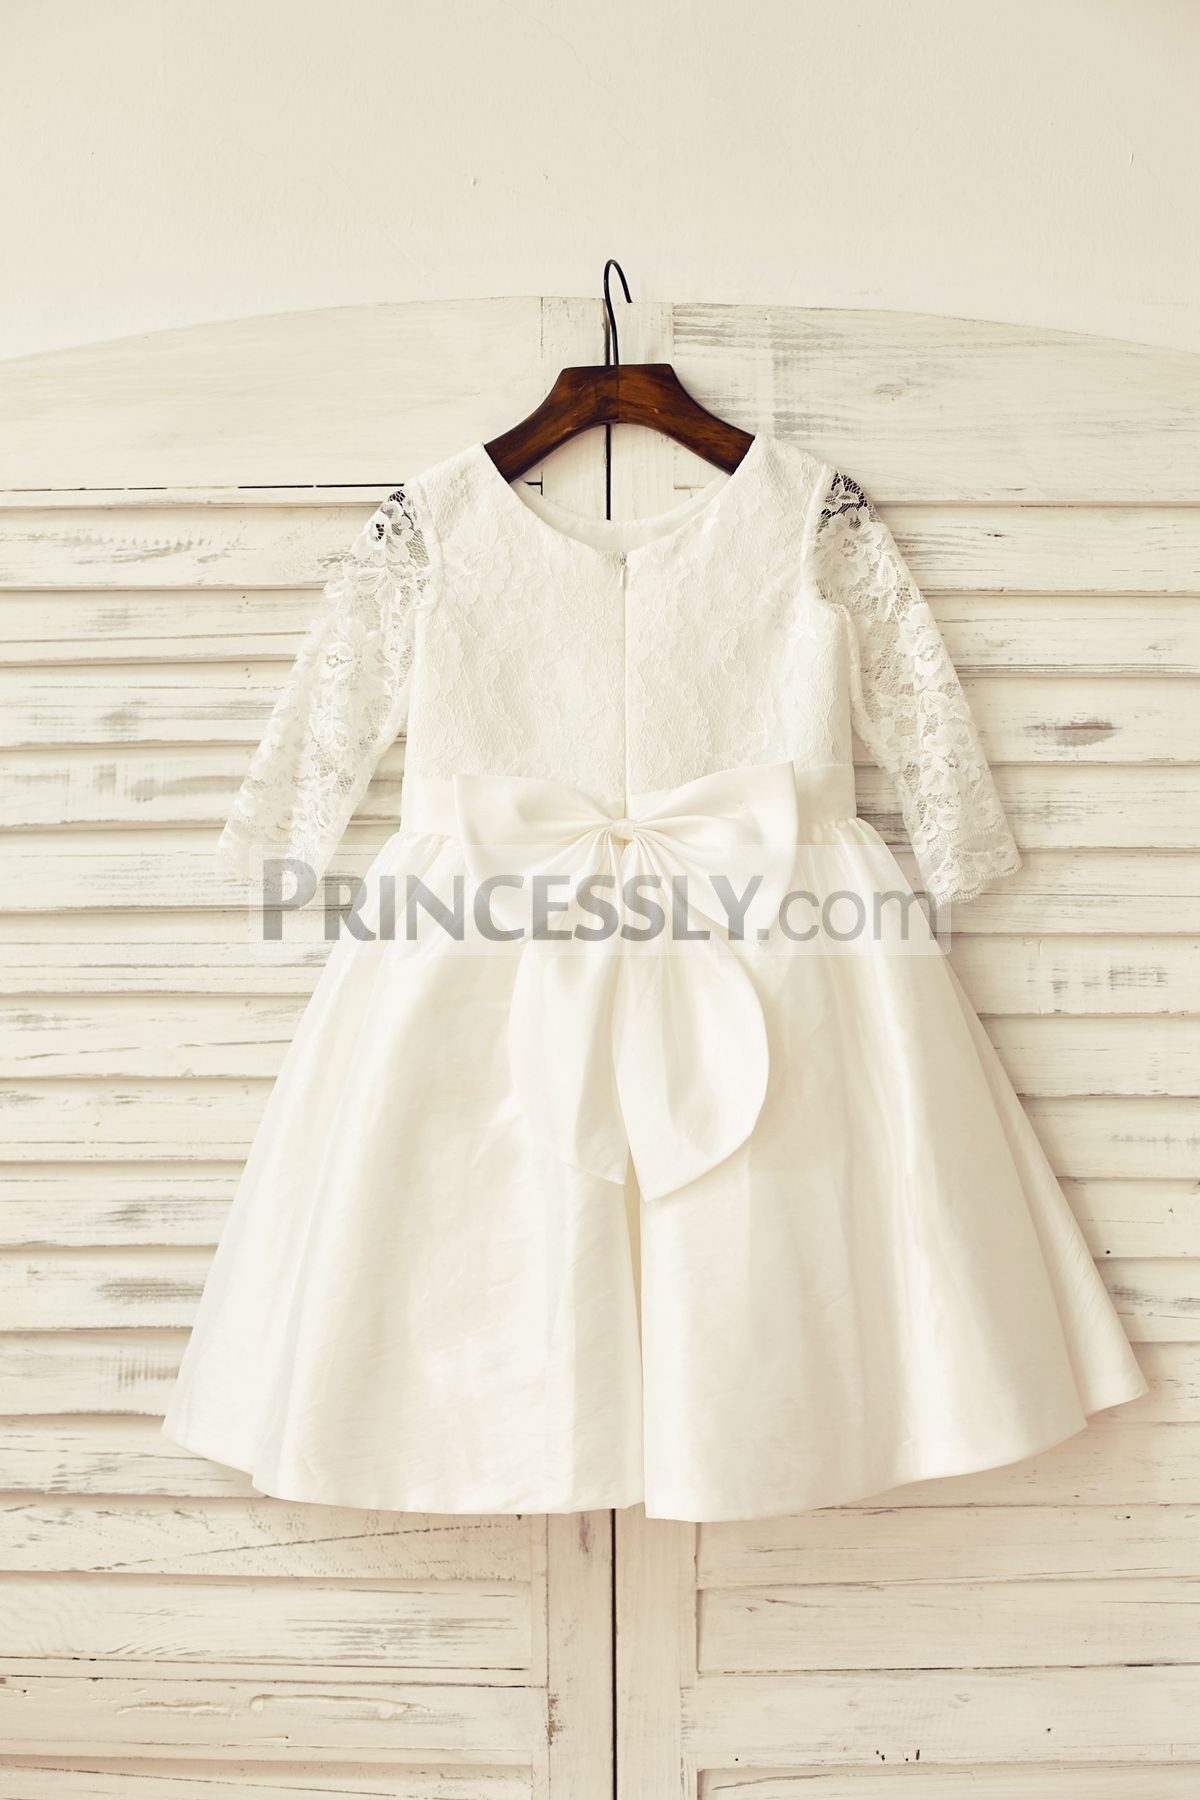 Long sleeves lace taffeta wedding baby girl dress